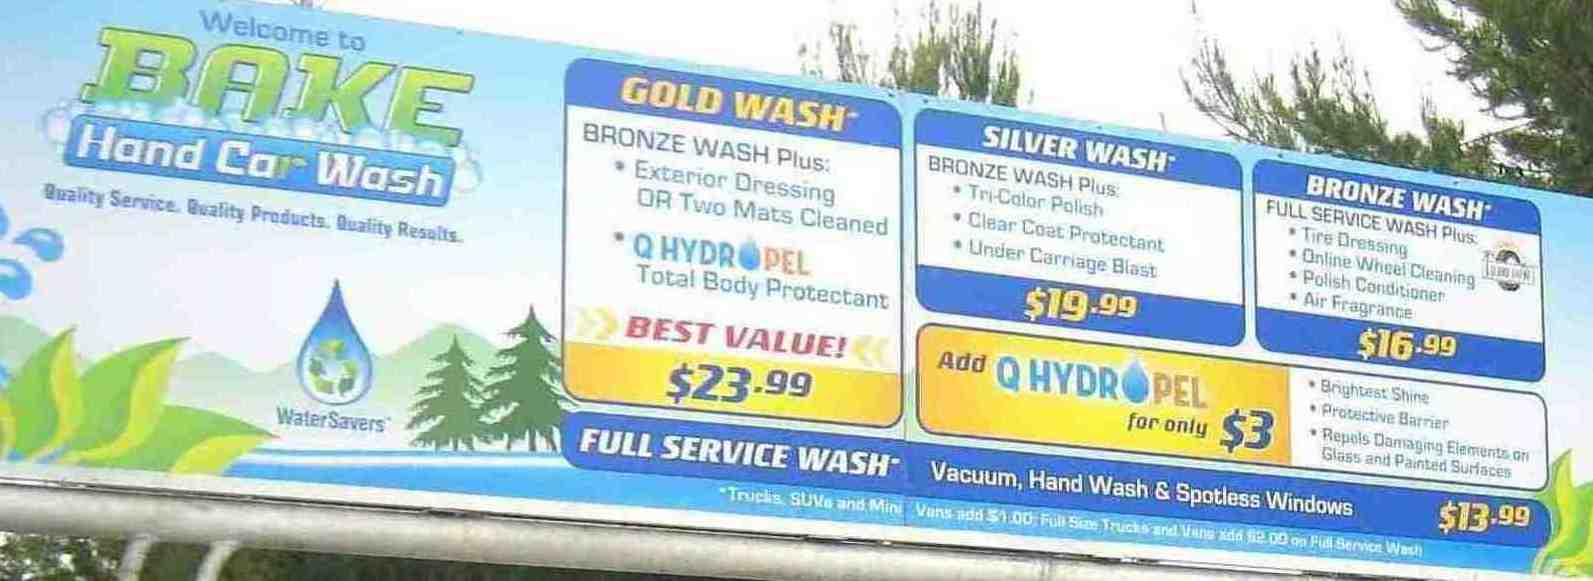 Pacific Hand Car Wash Coupons